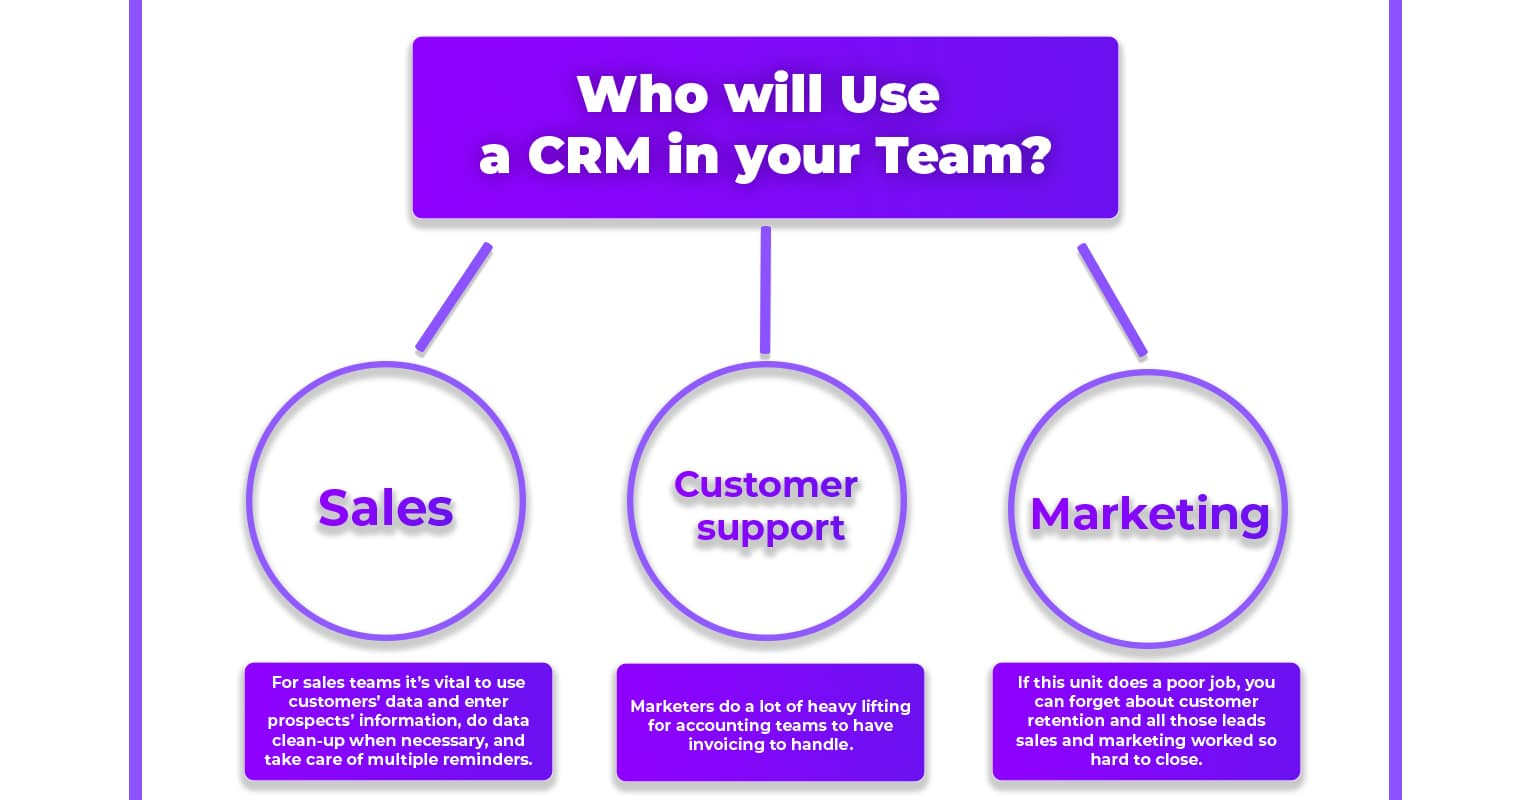 Who will use a CRM in your Tesm